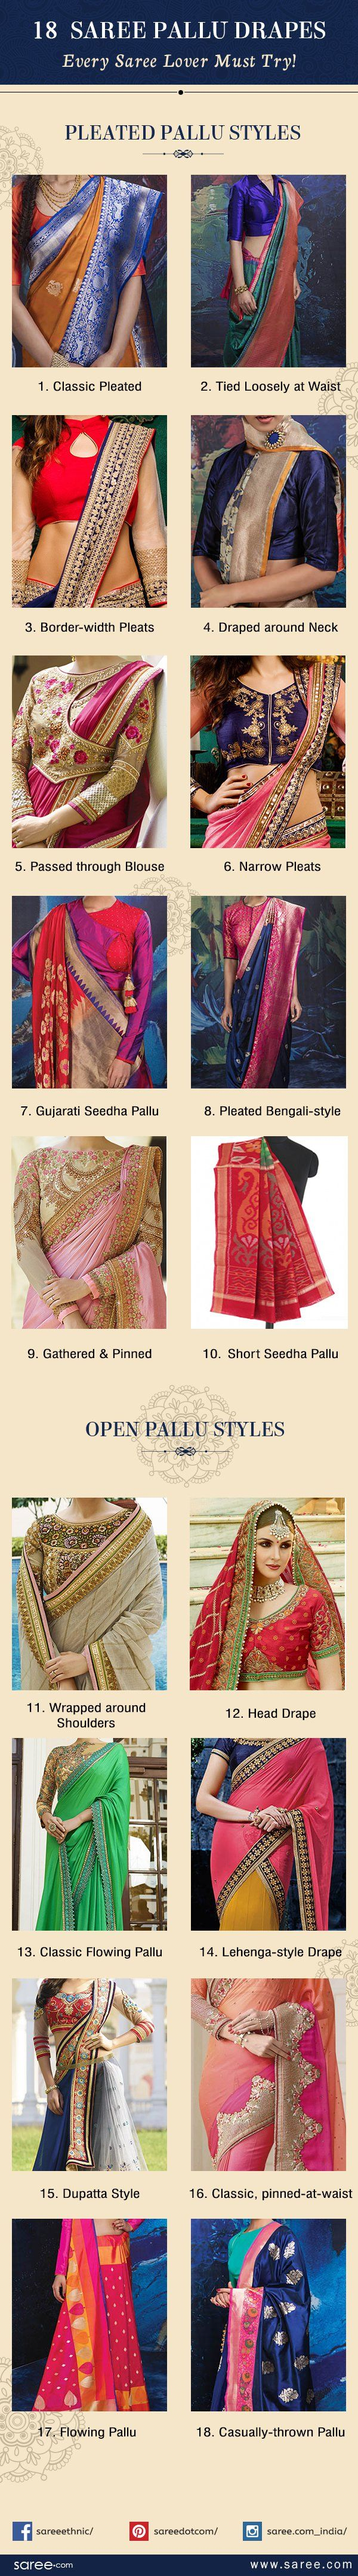 18-gorgeous-saree-pallu-drapes-you-must-try-infographic